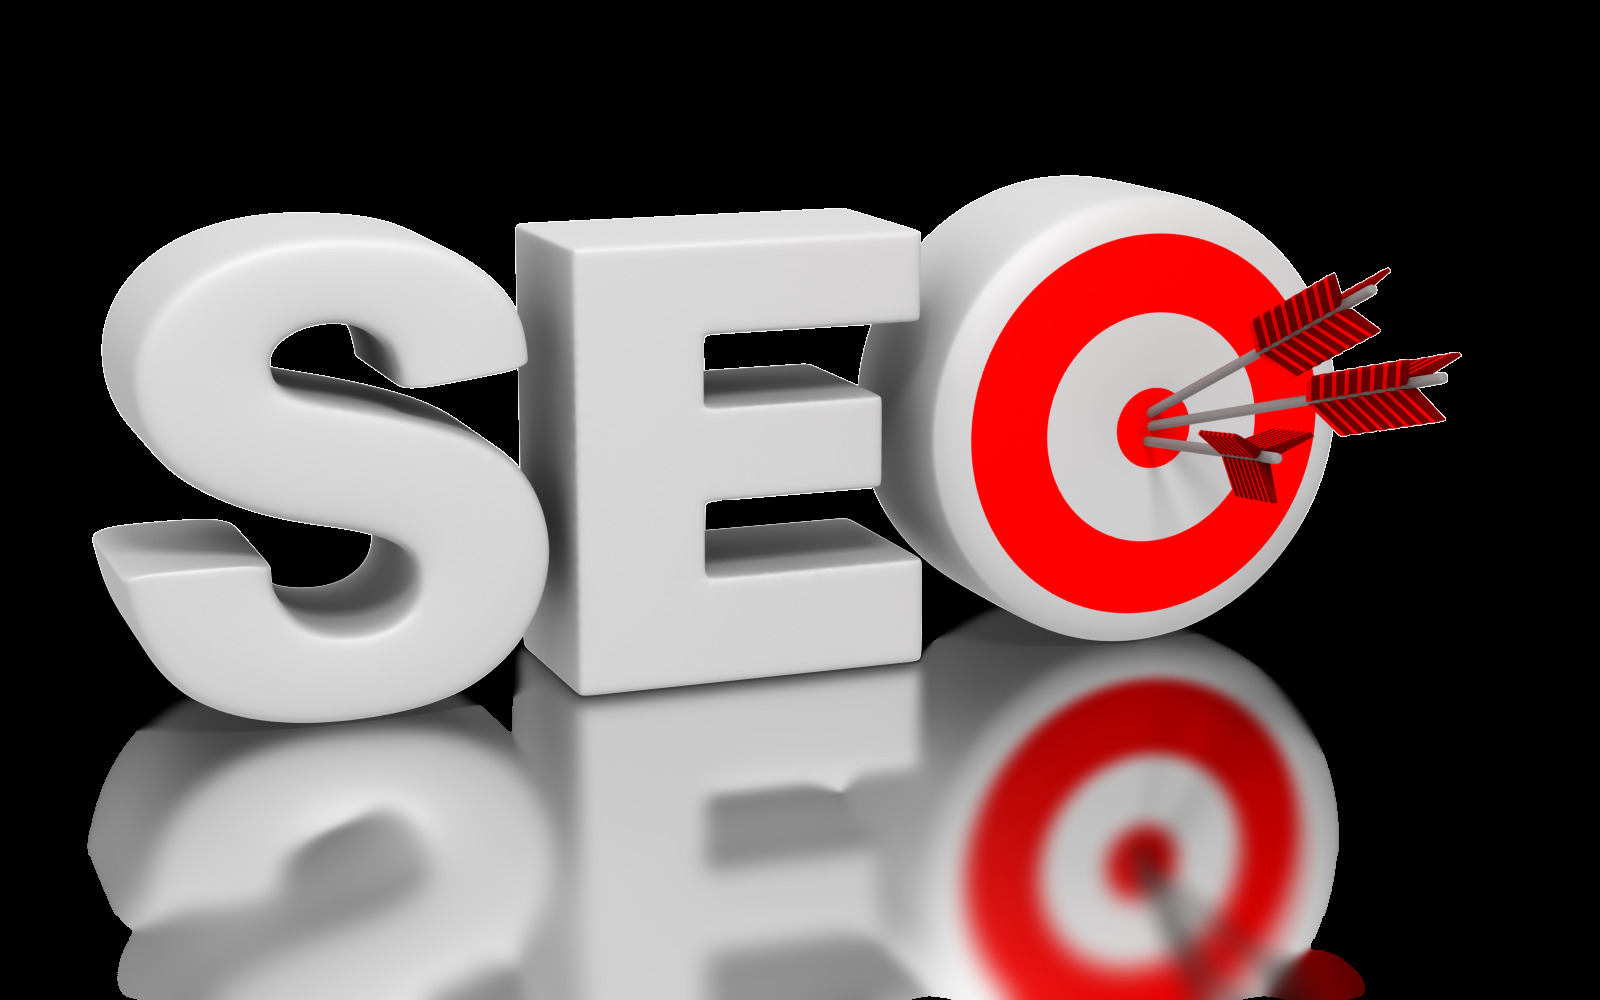 Sick And Tired Of Doing SEO The Old Way? Read This